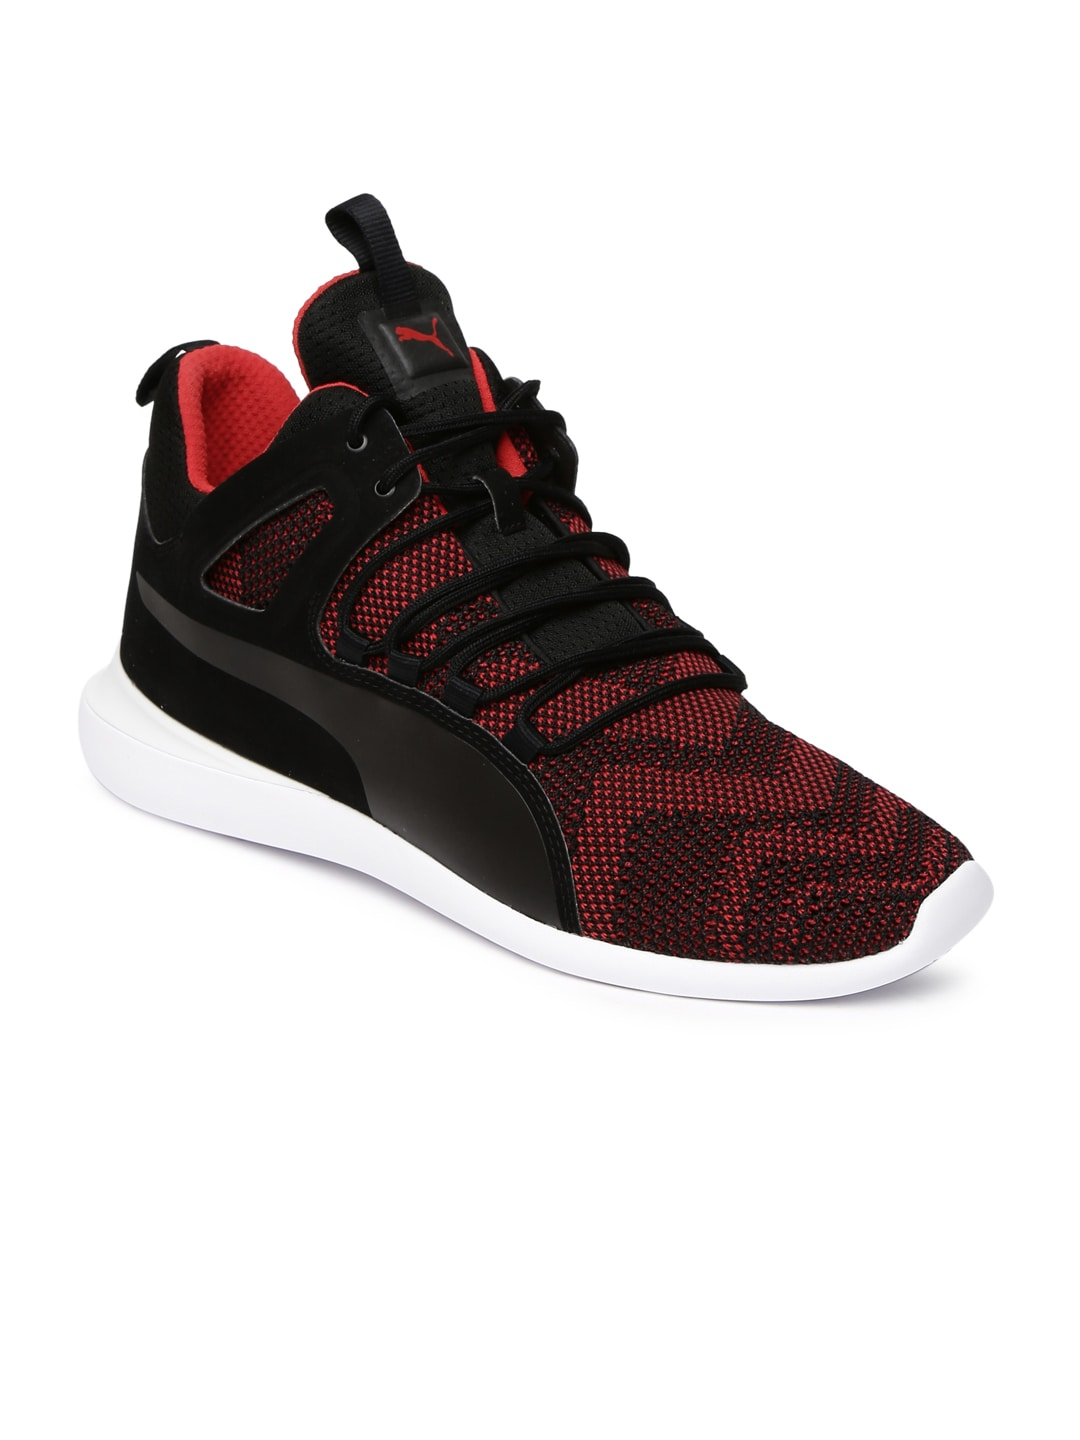 b68142ff2b4 Puma Men Mid Evo Casual Shoes - Buy Puma Men Mid Evo Casual Shoes online in  India